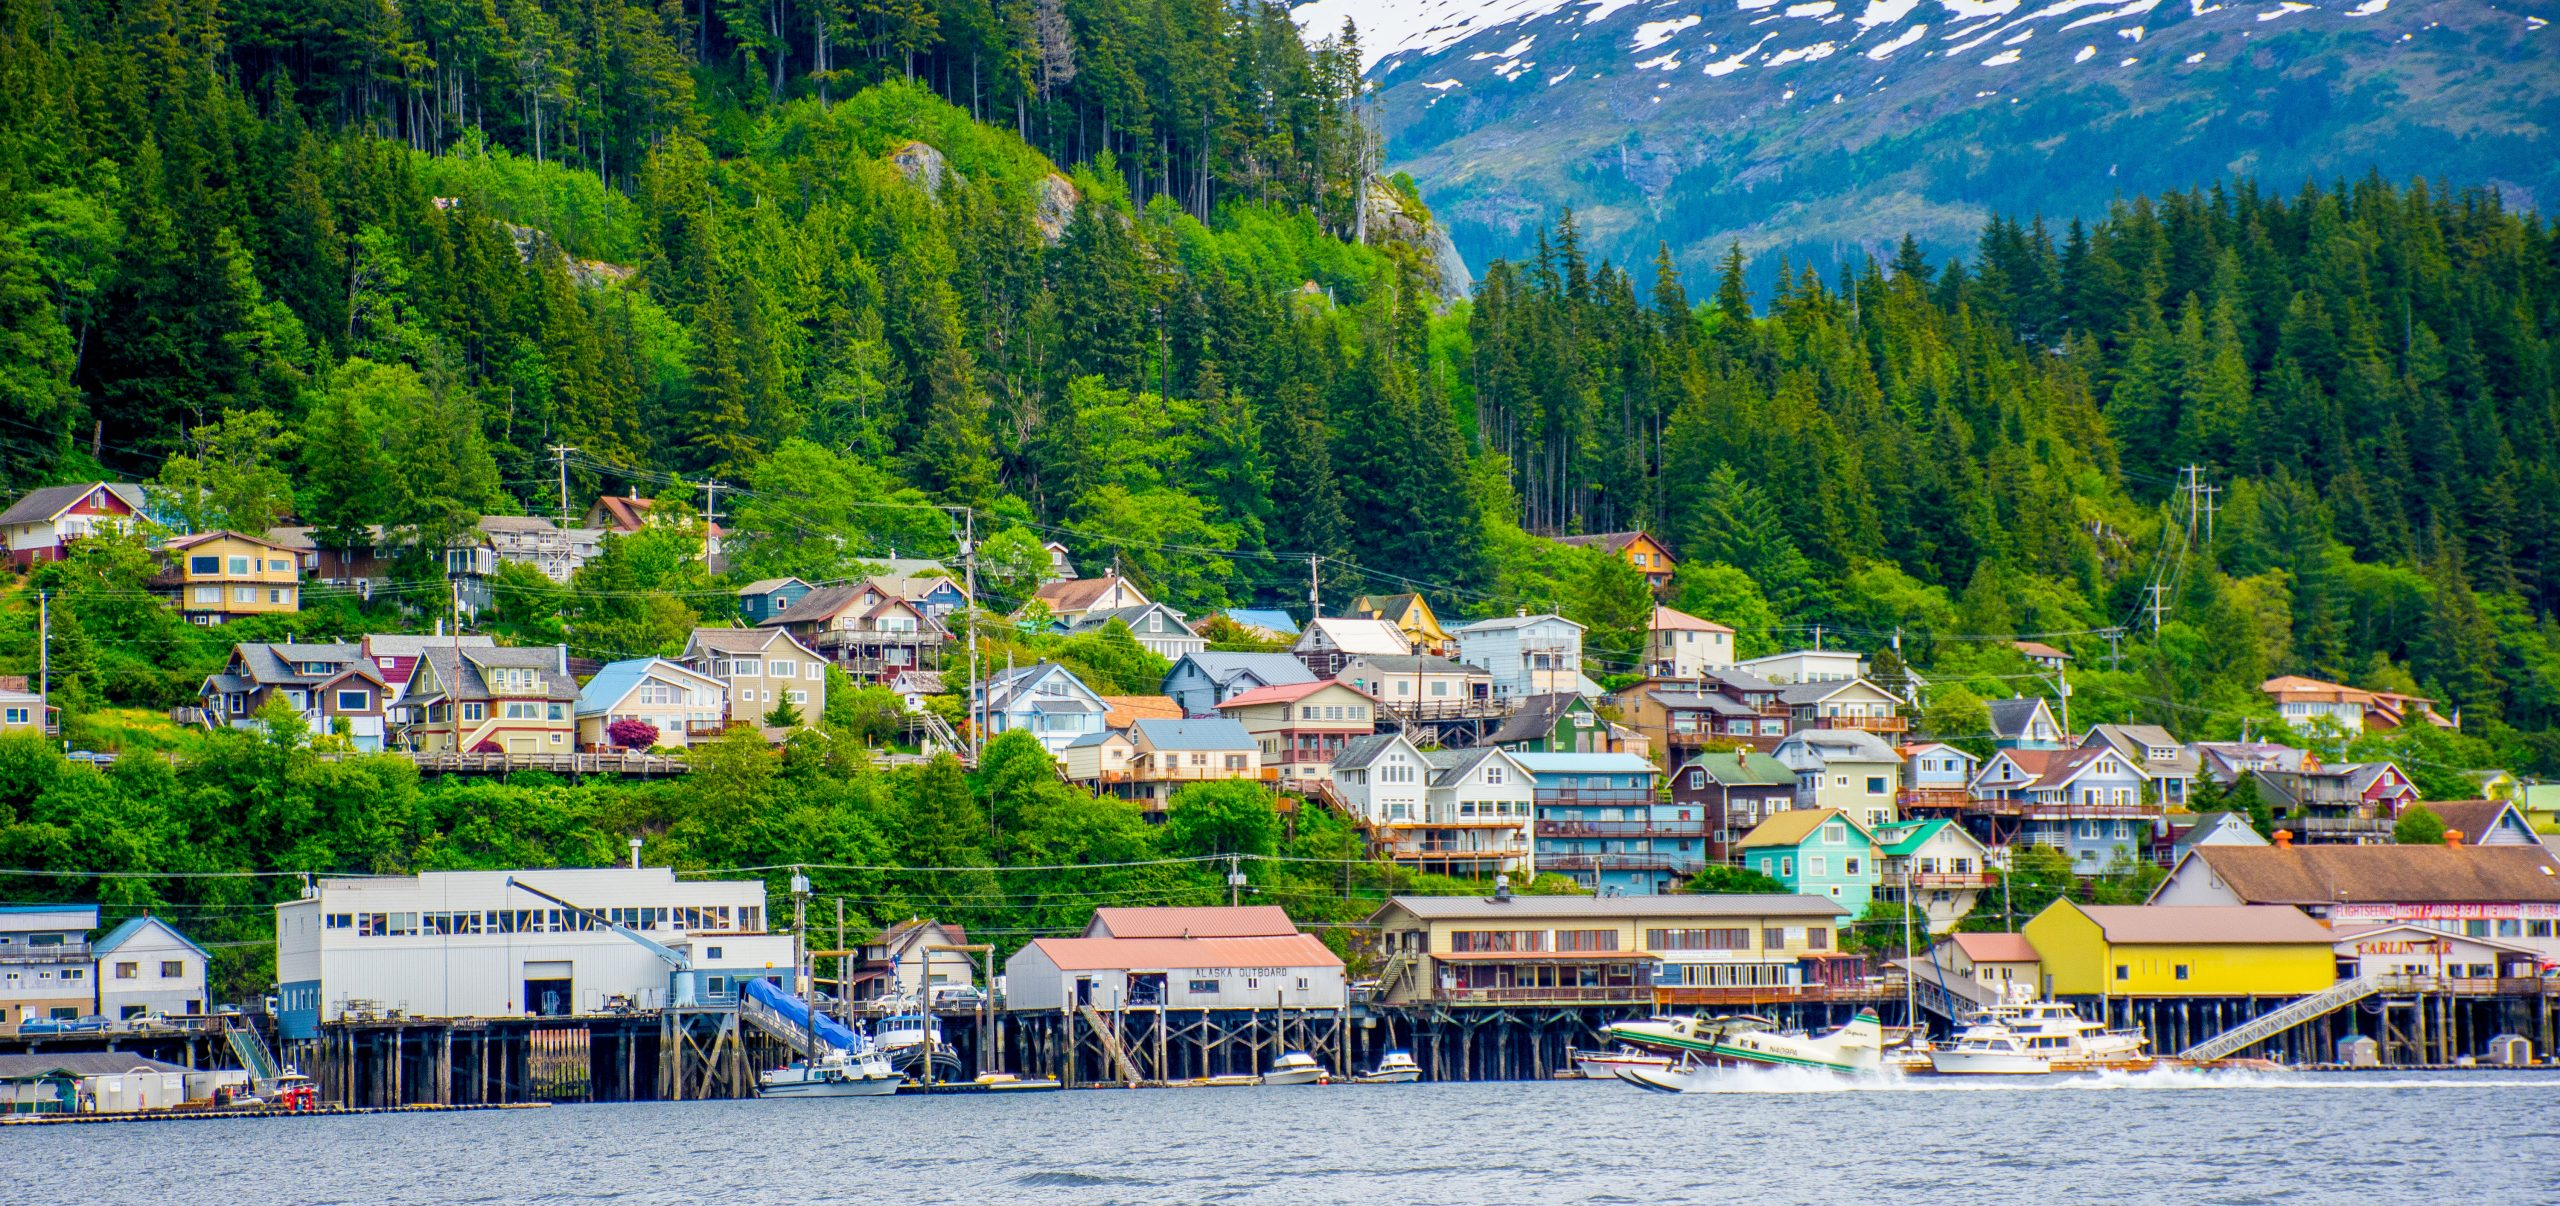 Hate has no home in Ketchikan.